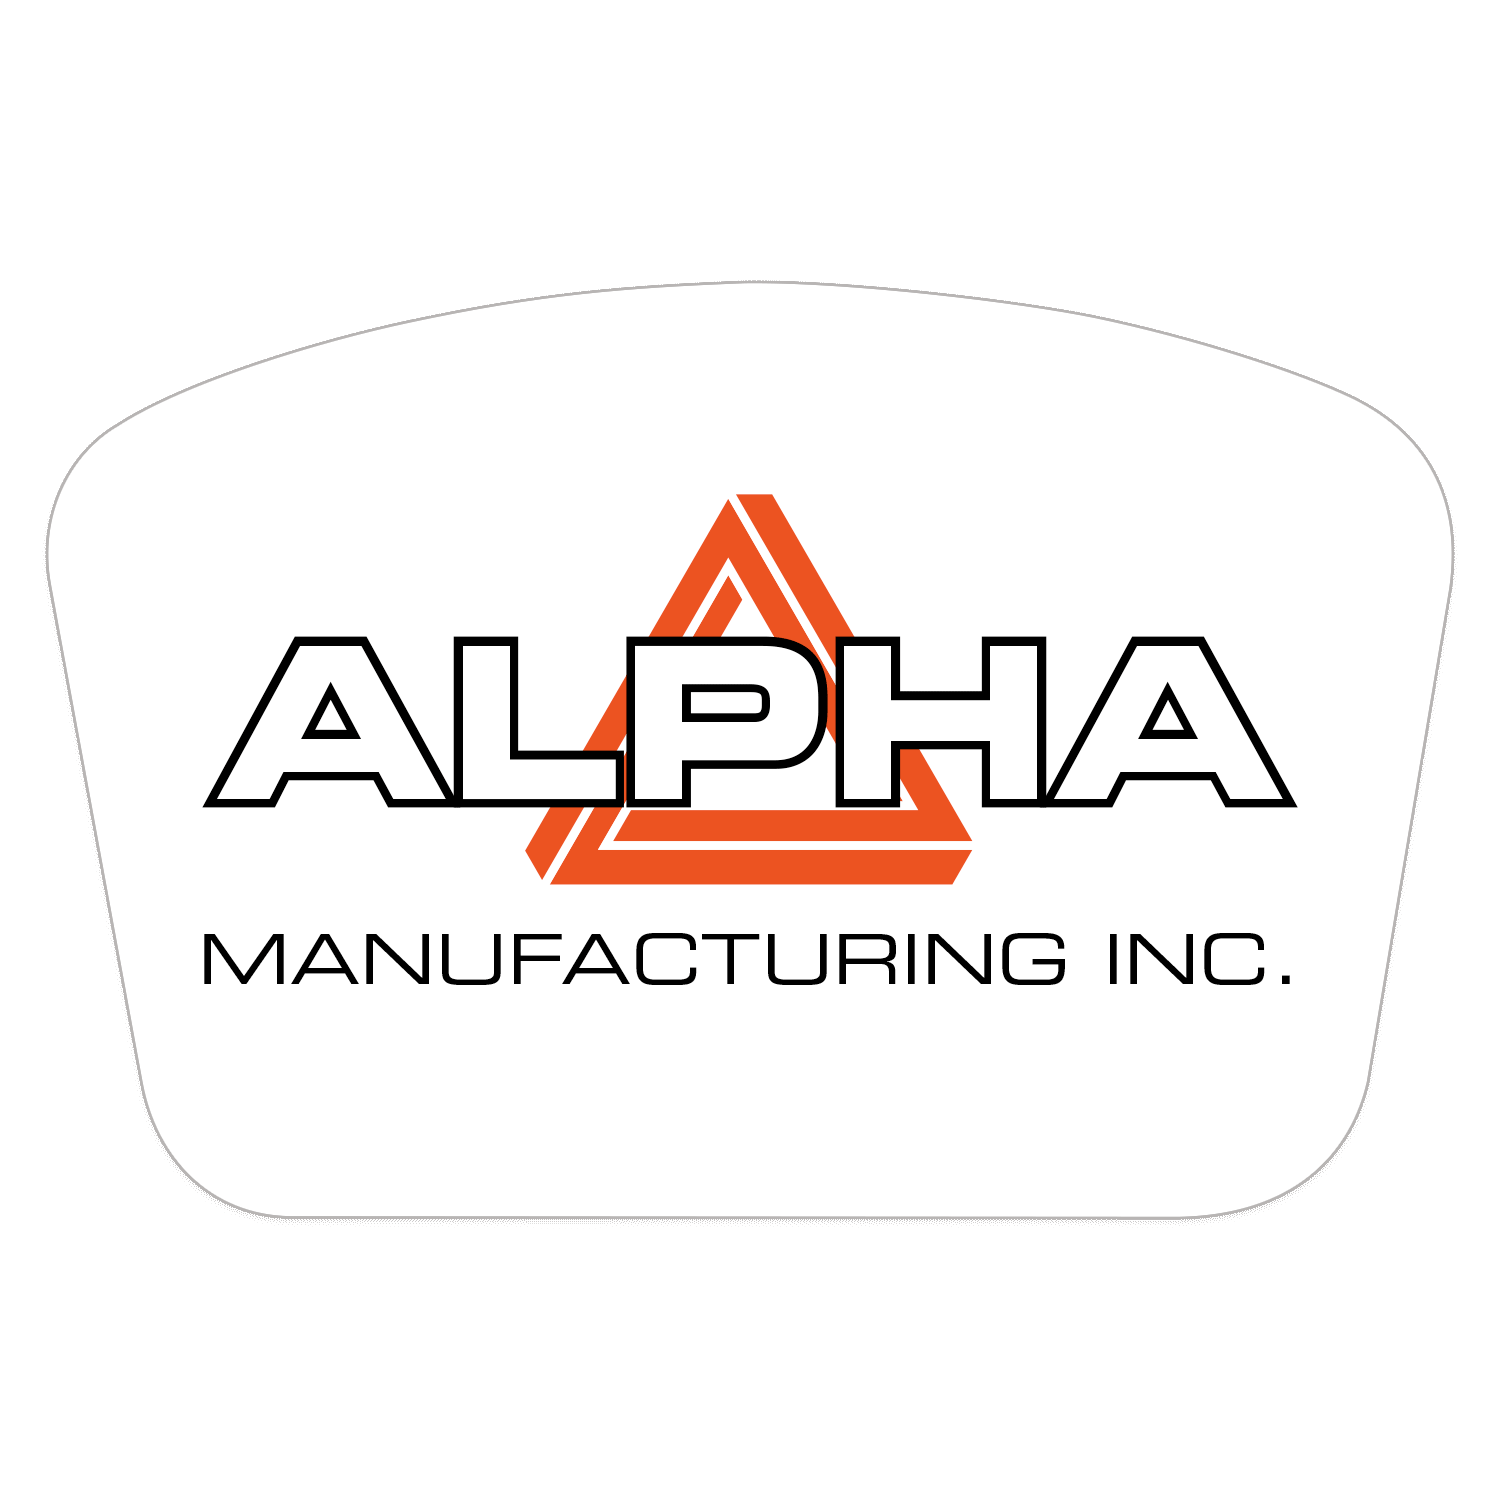 https://www.sswprinting.com/images/products_gallery_images/14401_Alpha-Manufacturing_hi-res.png